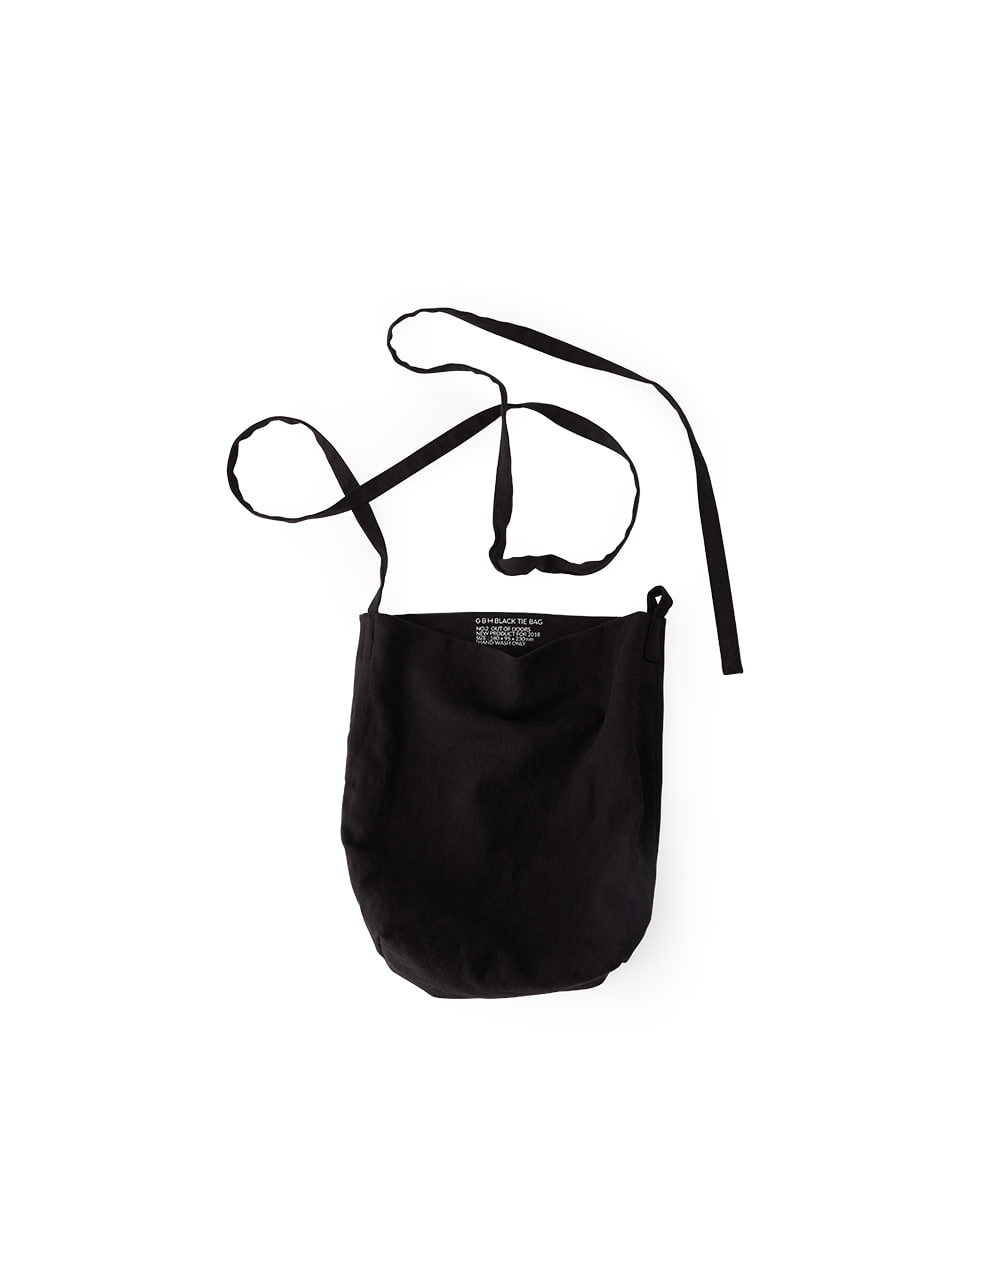 GBH HOME BLACK TIE BAG  SMALL